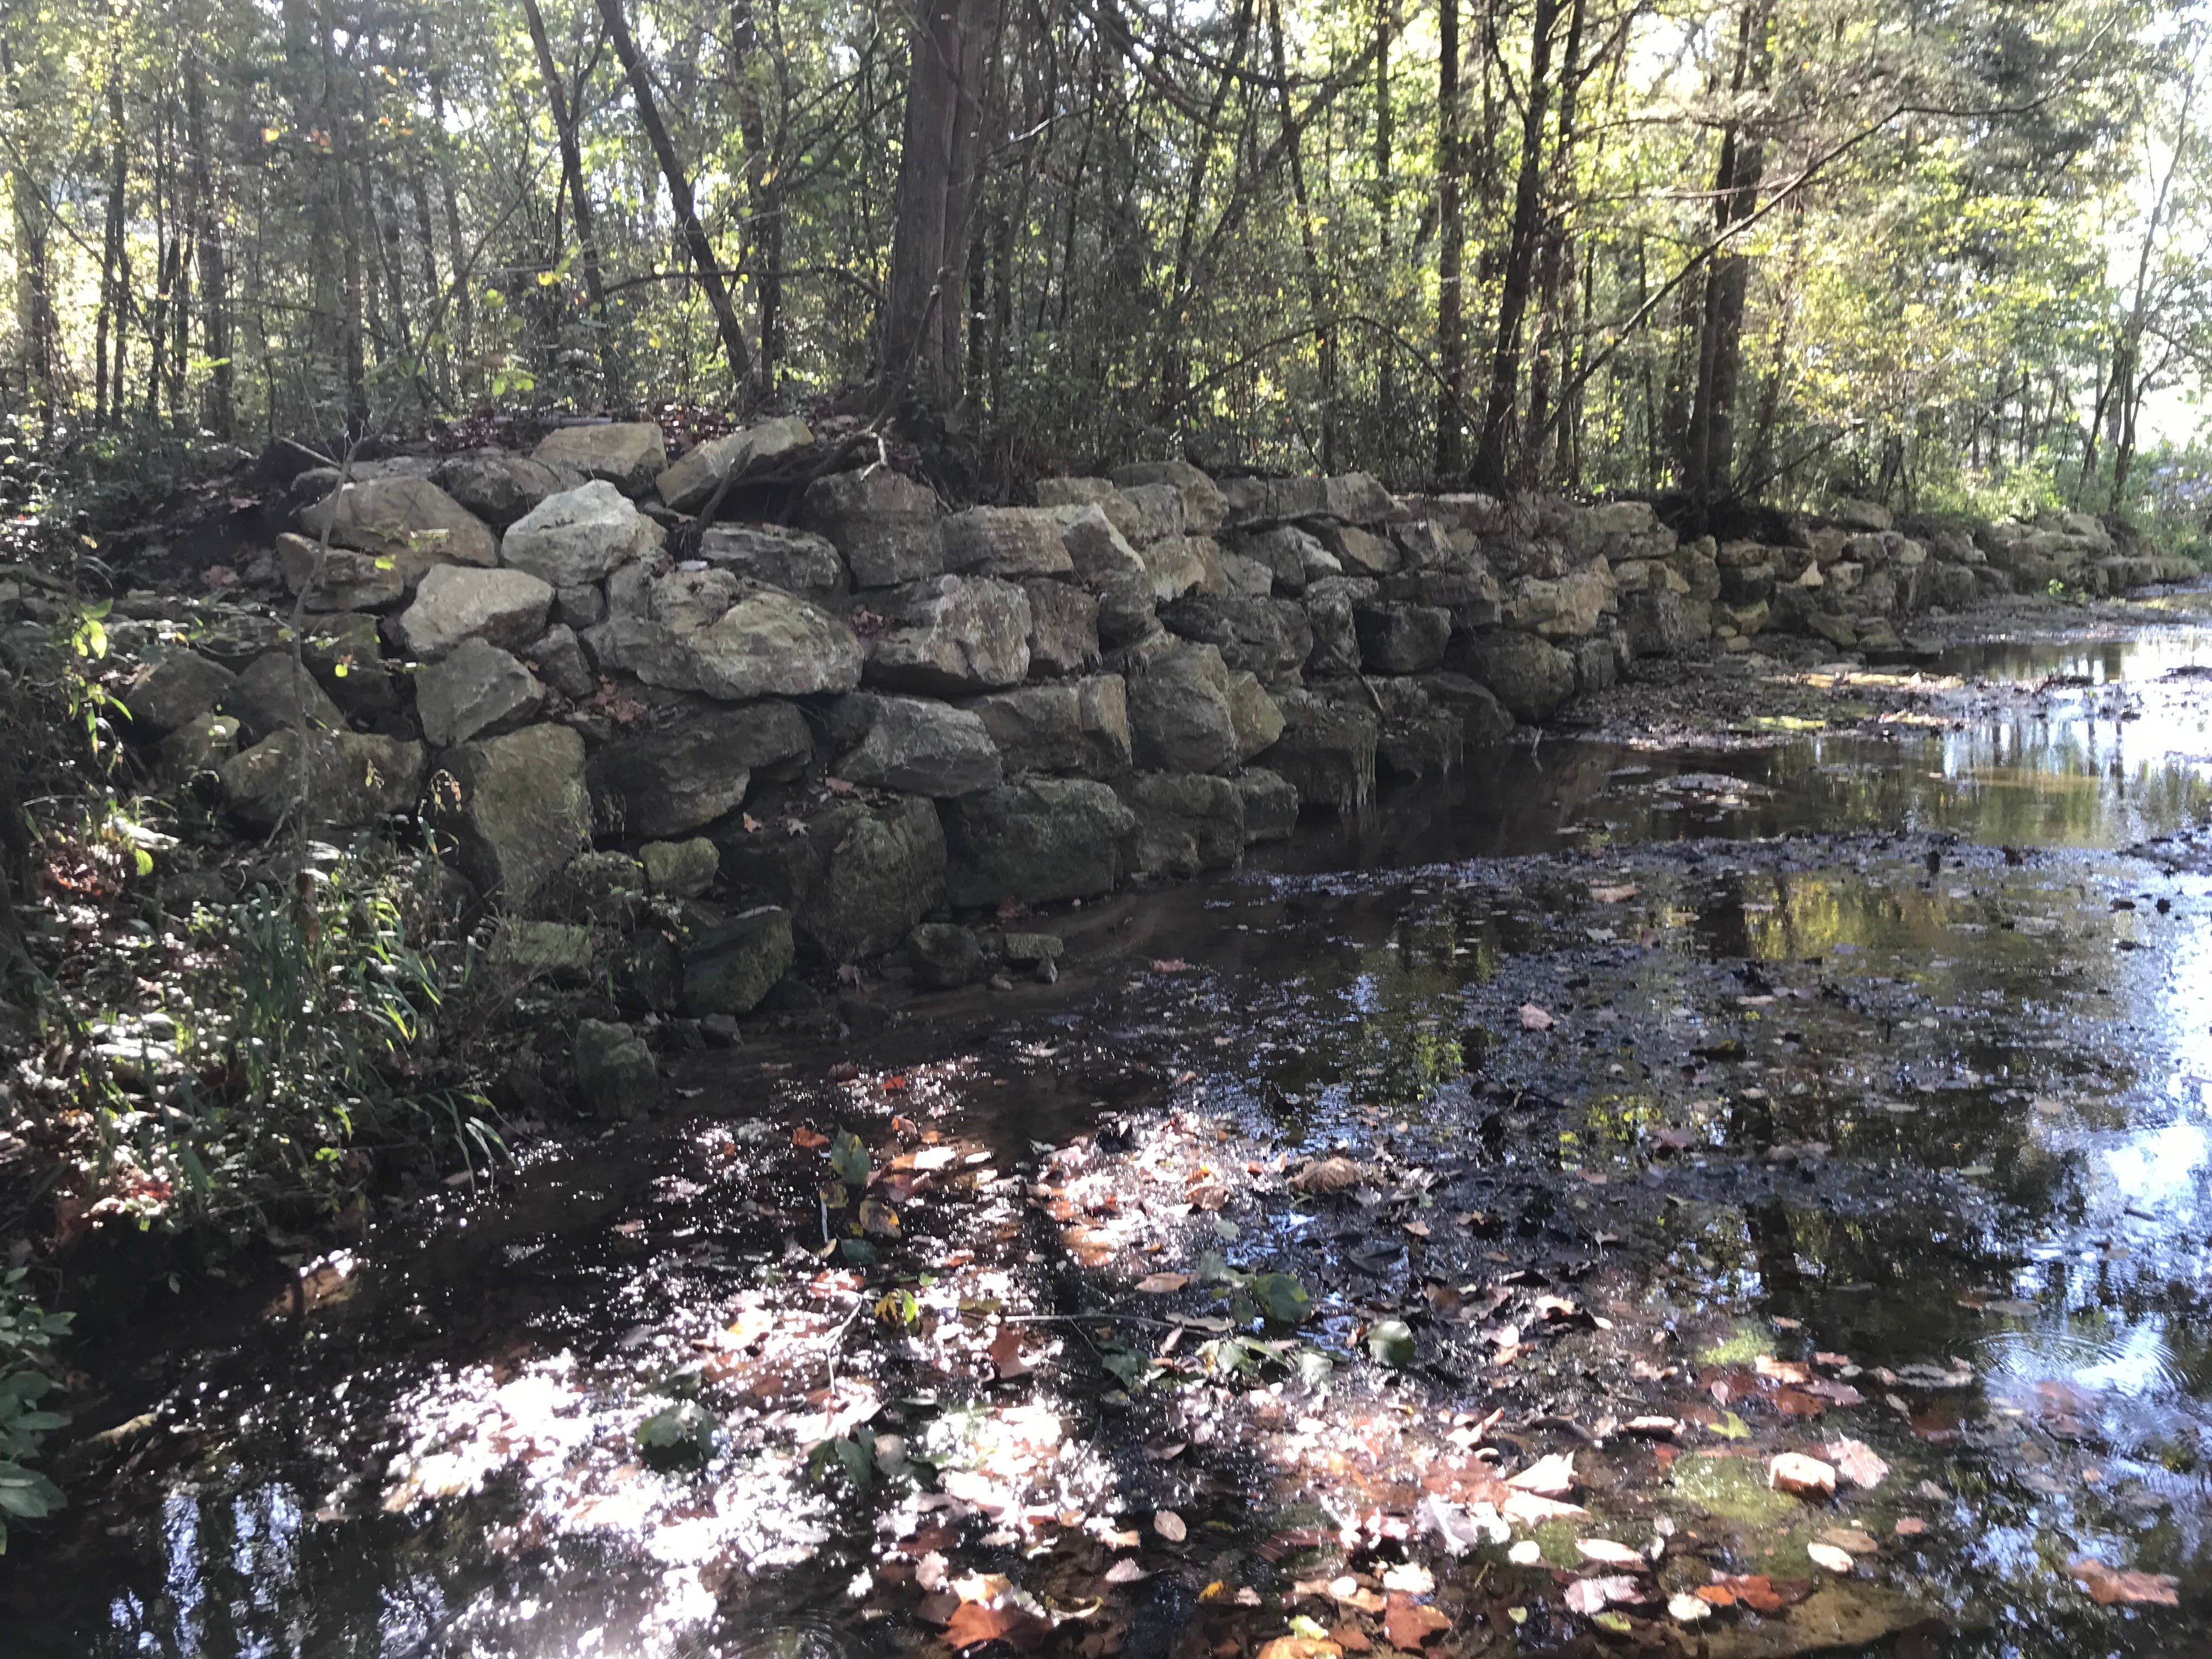 About 100 tons of rock was used to help reinforce Dry Run Creek's bank. The additional rock will help prevent sediment from infiltrating the creek during heavy rainfalls.